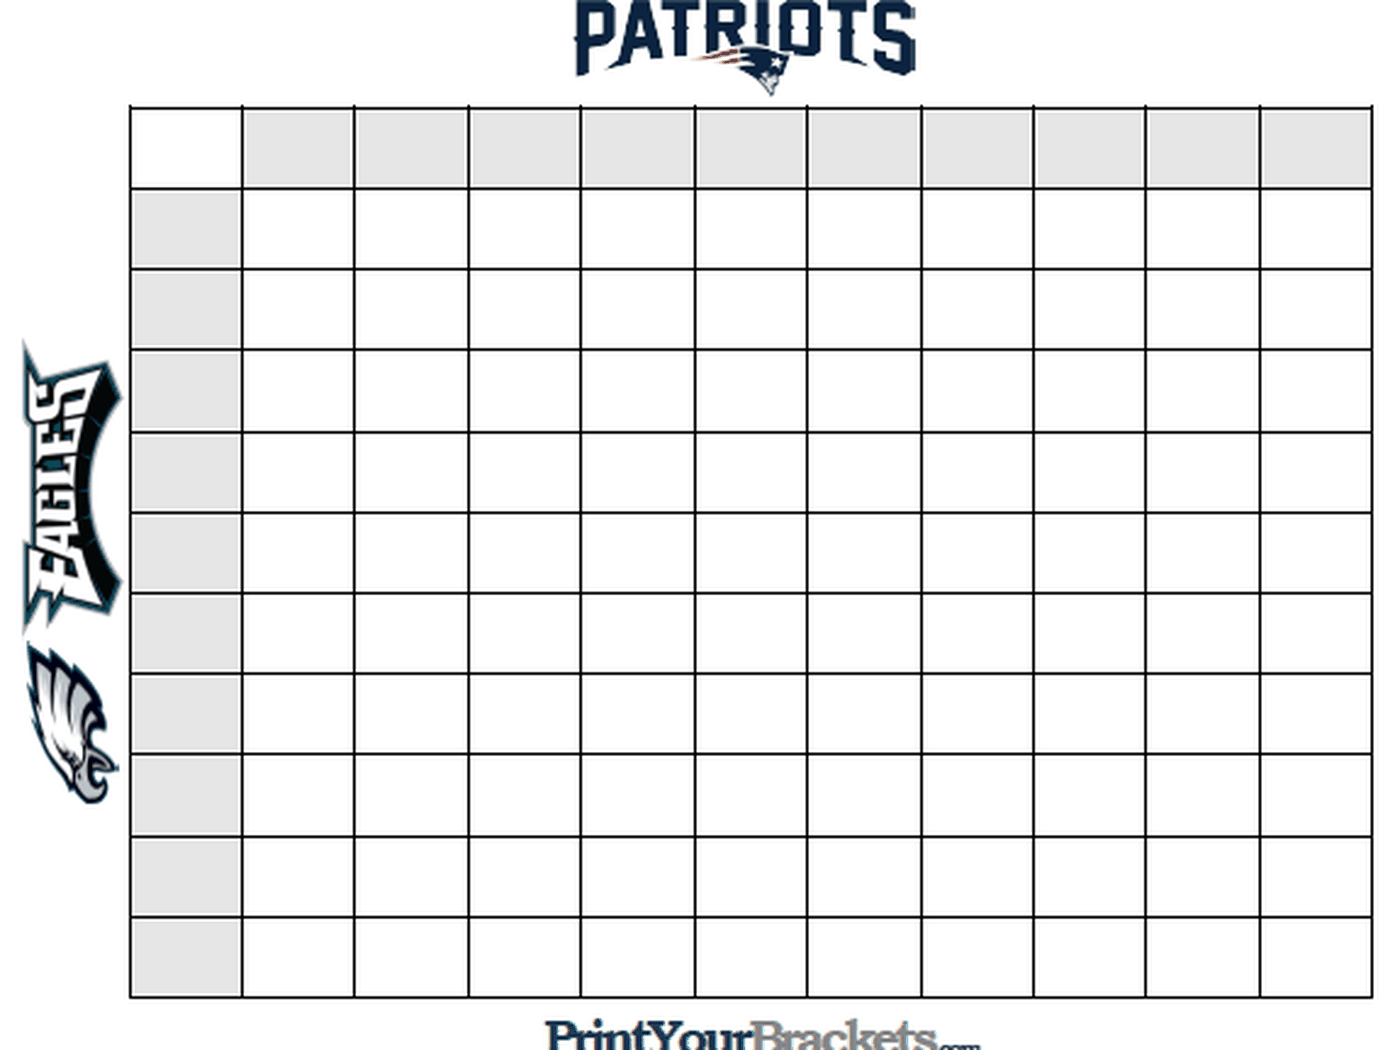 Super Bowl squares template, how to play online, and more - SBNation.com